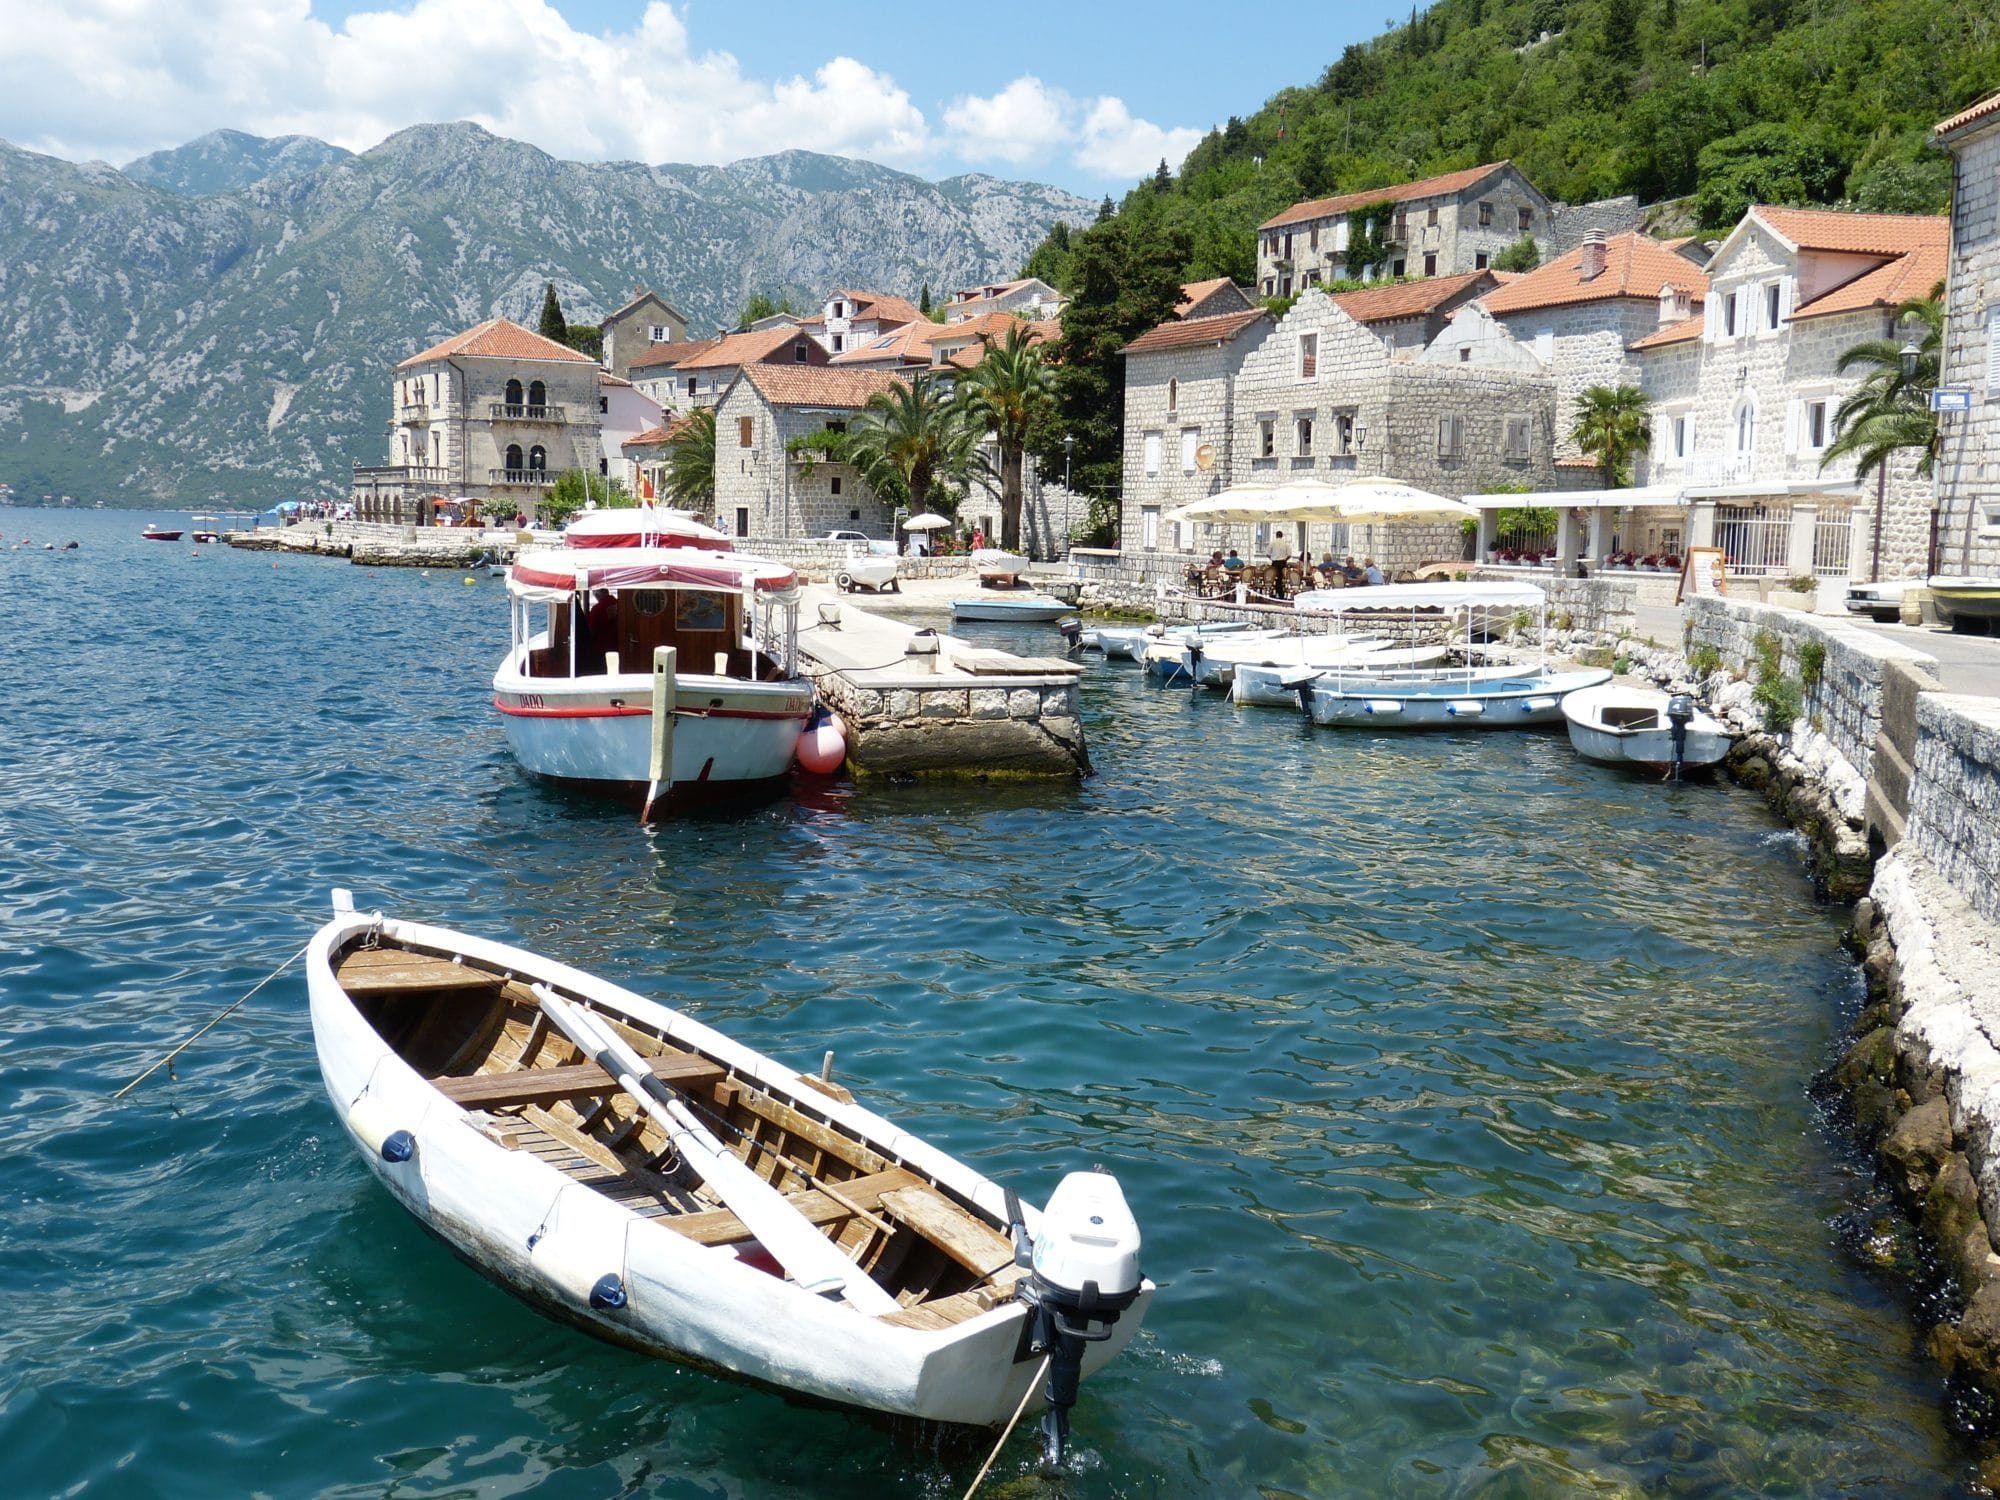 Montenegro offer property investment opportunities, both along the Adriatic coast and further inland.